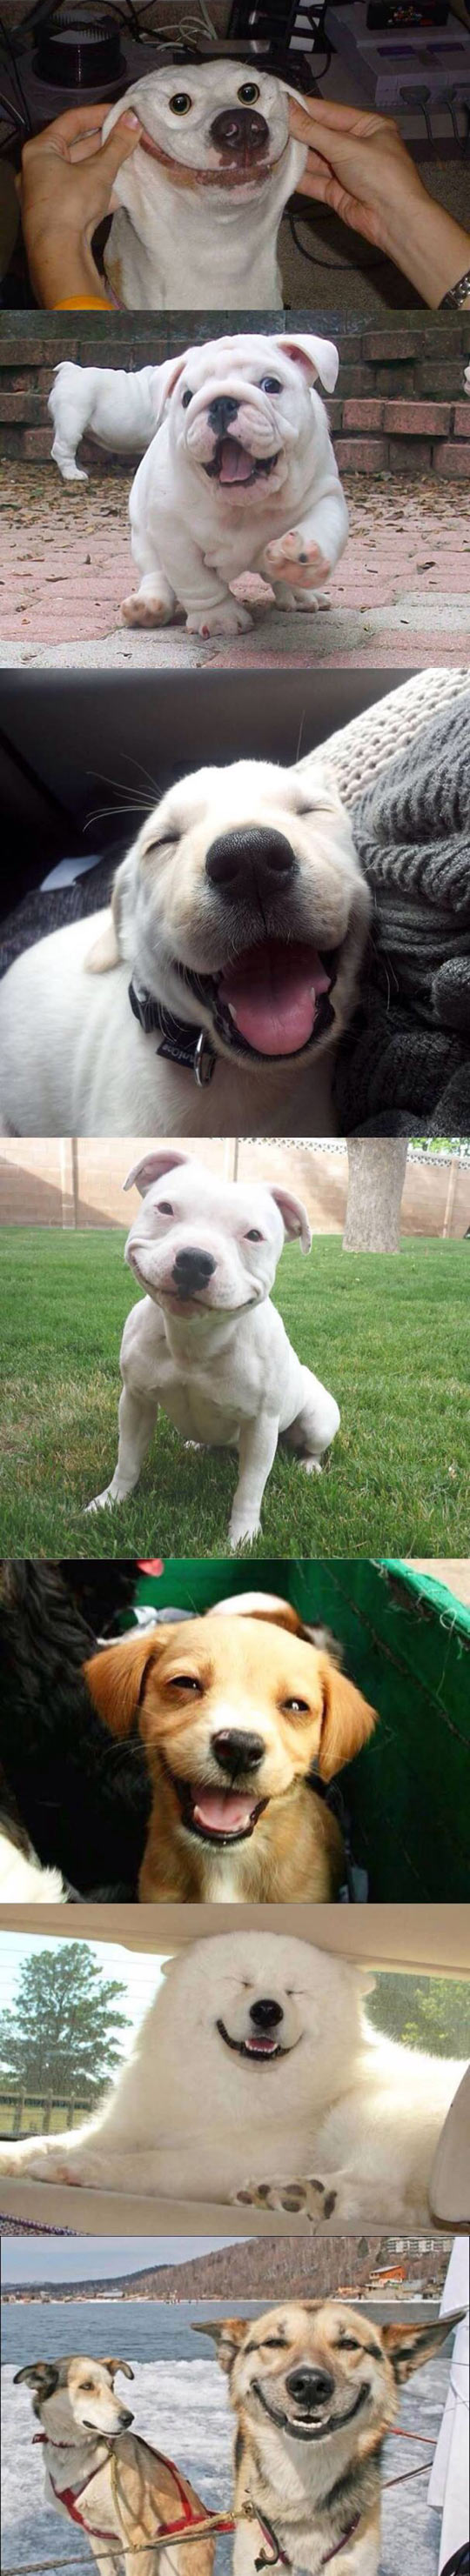 funny-dogs-smiling-happy-cute-pet